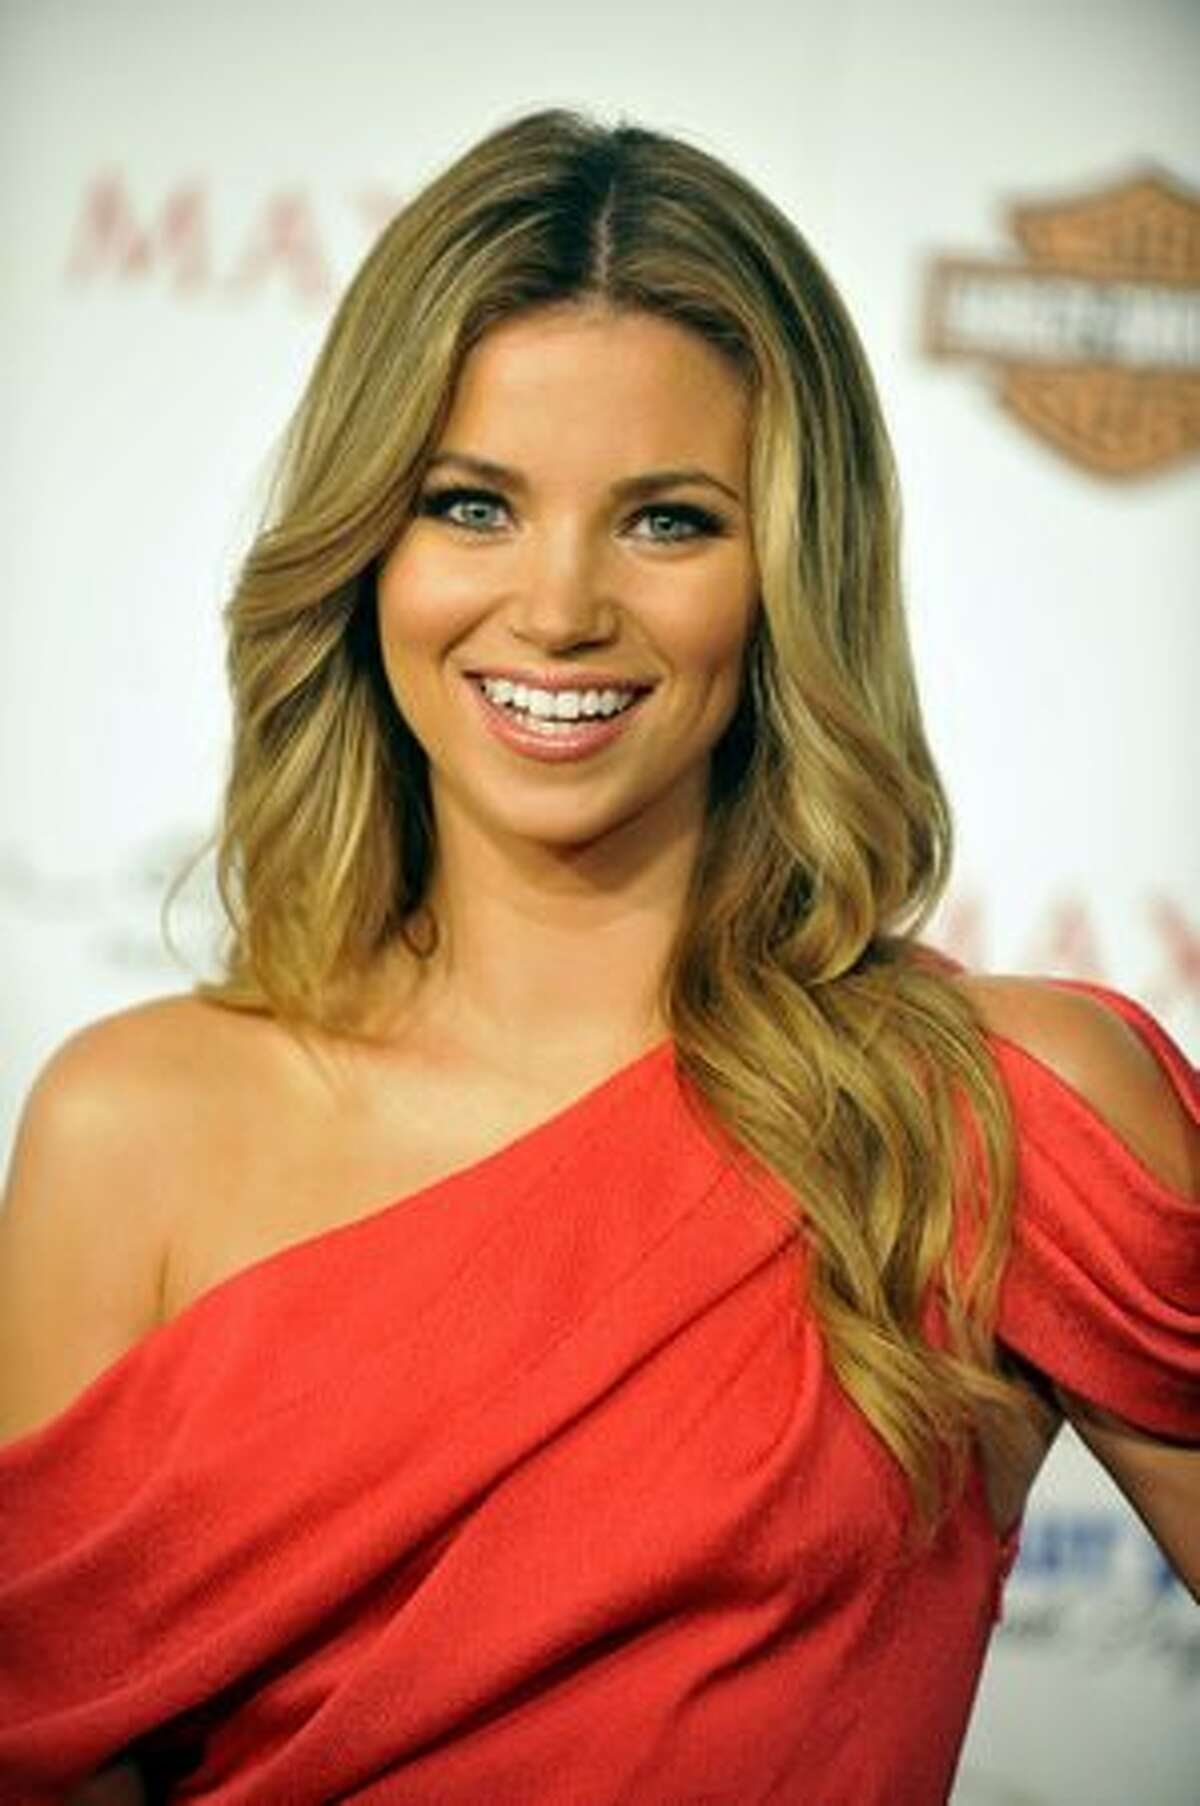 Amber Lancaster poses for a picture at the 11th annual Maxim Hot 100 Party on May 19 in Los Angeles.